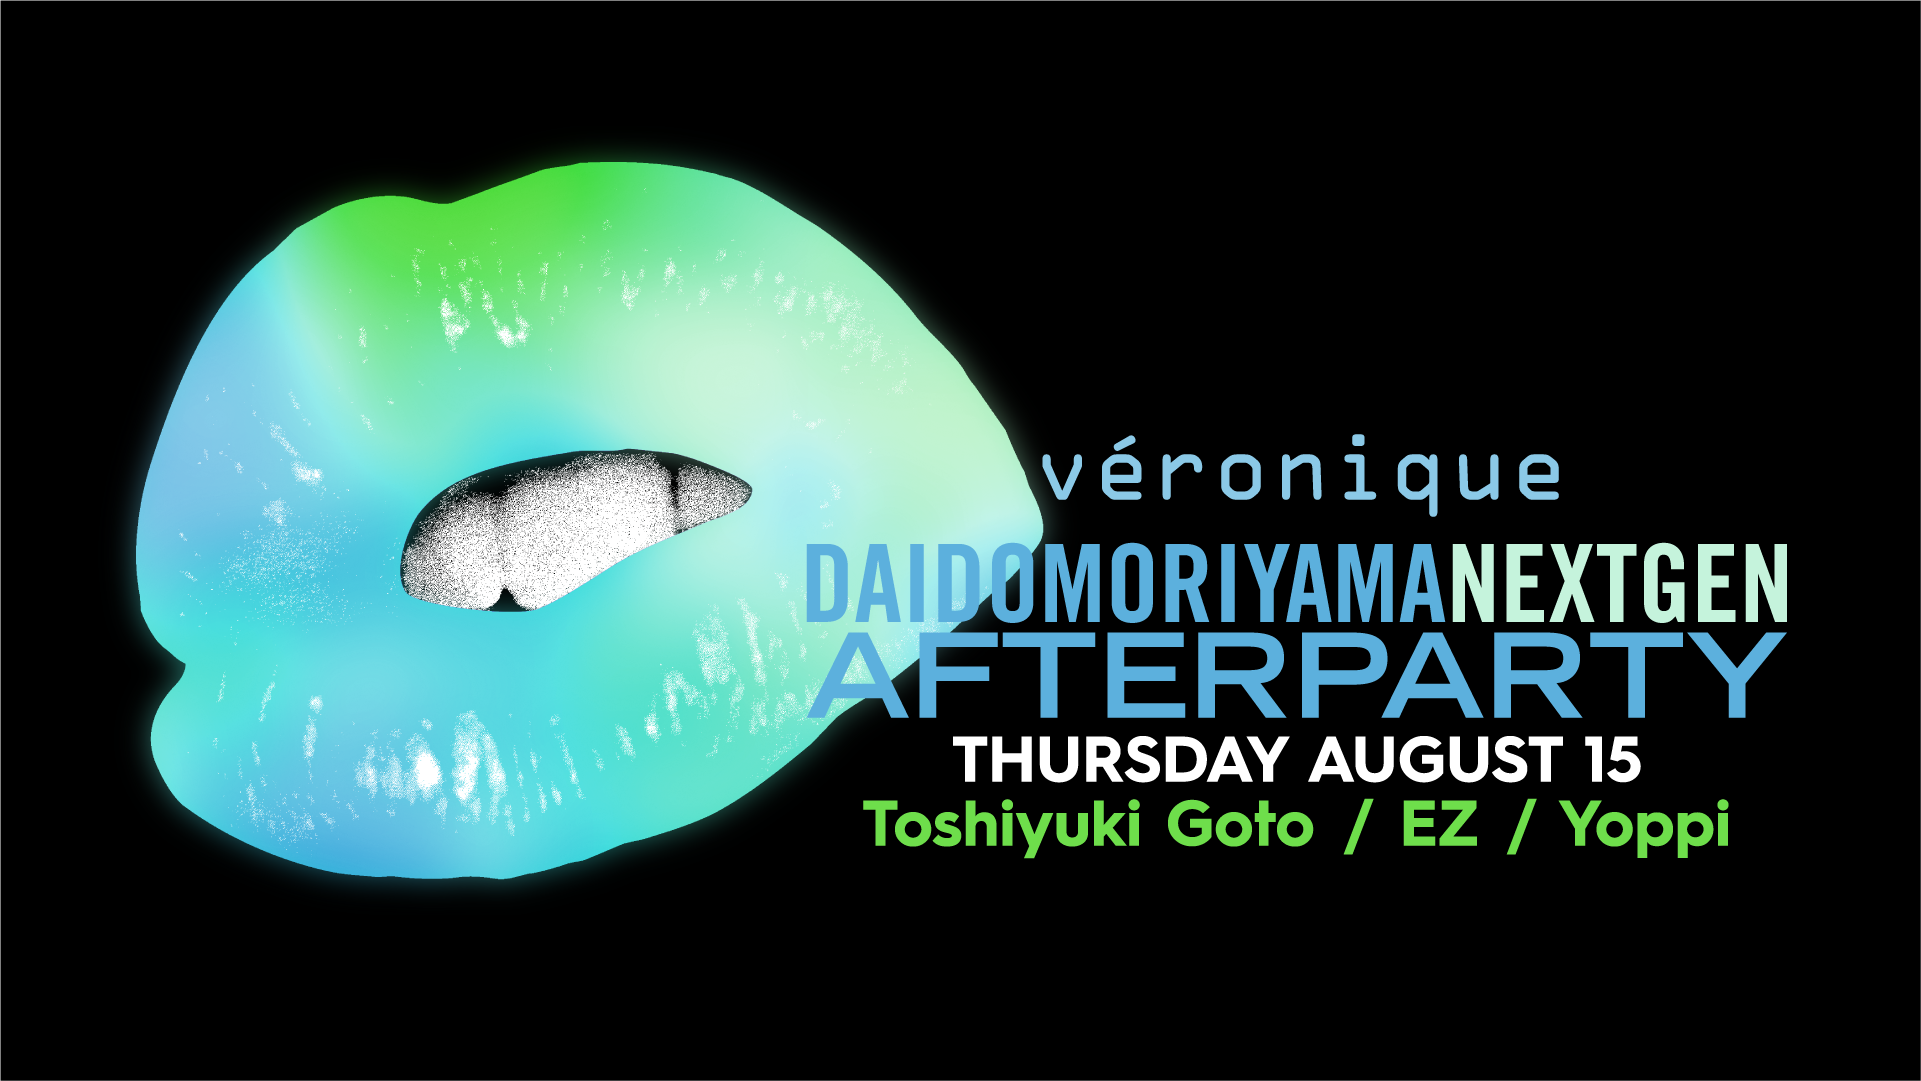 DAIDO MORIYAMA NEXT GEN AFTER PARTY DAY14